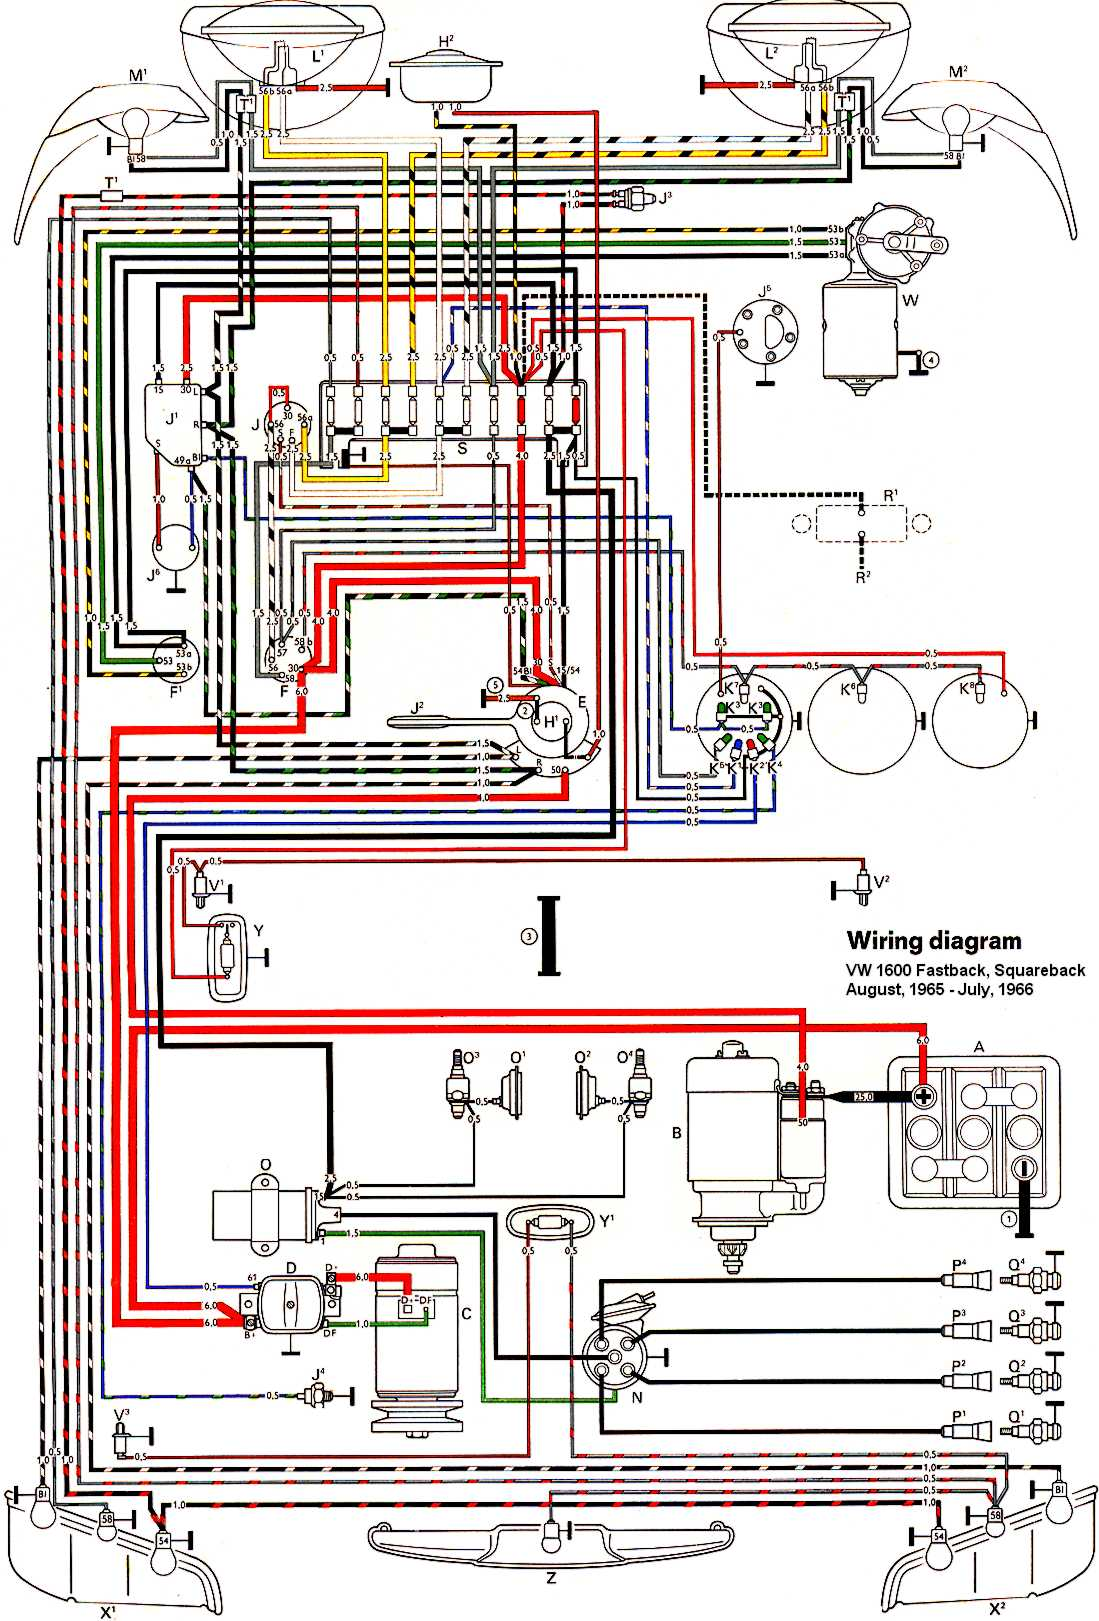 type3_1600_66 vw thing wiring diagram 1974 beetle heater diagram \u2022 wiring 1971 vw bus wiring diagram at honlapkeszites.co